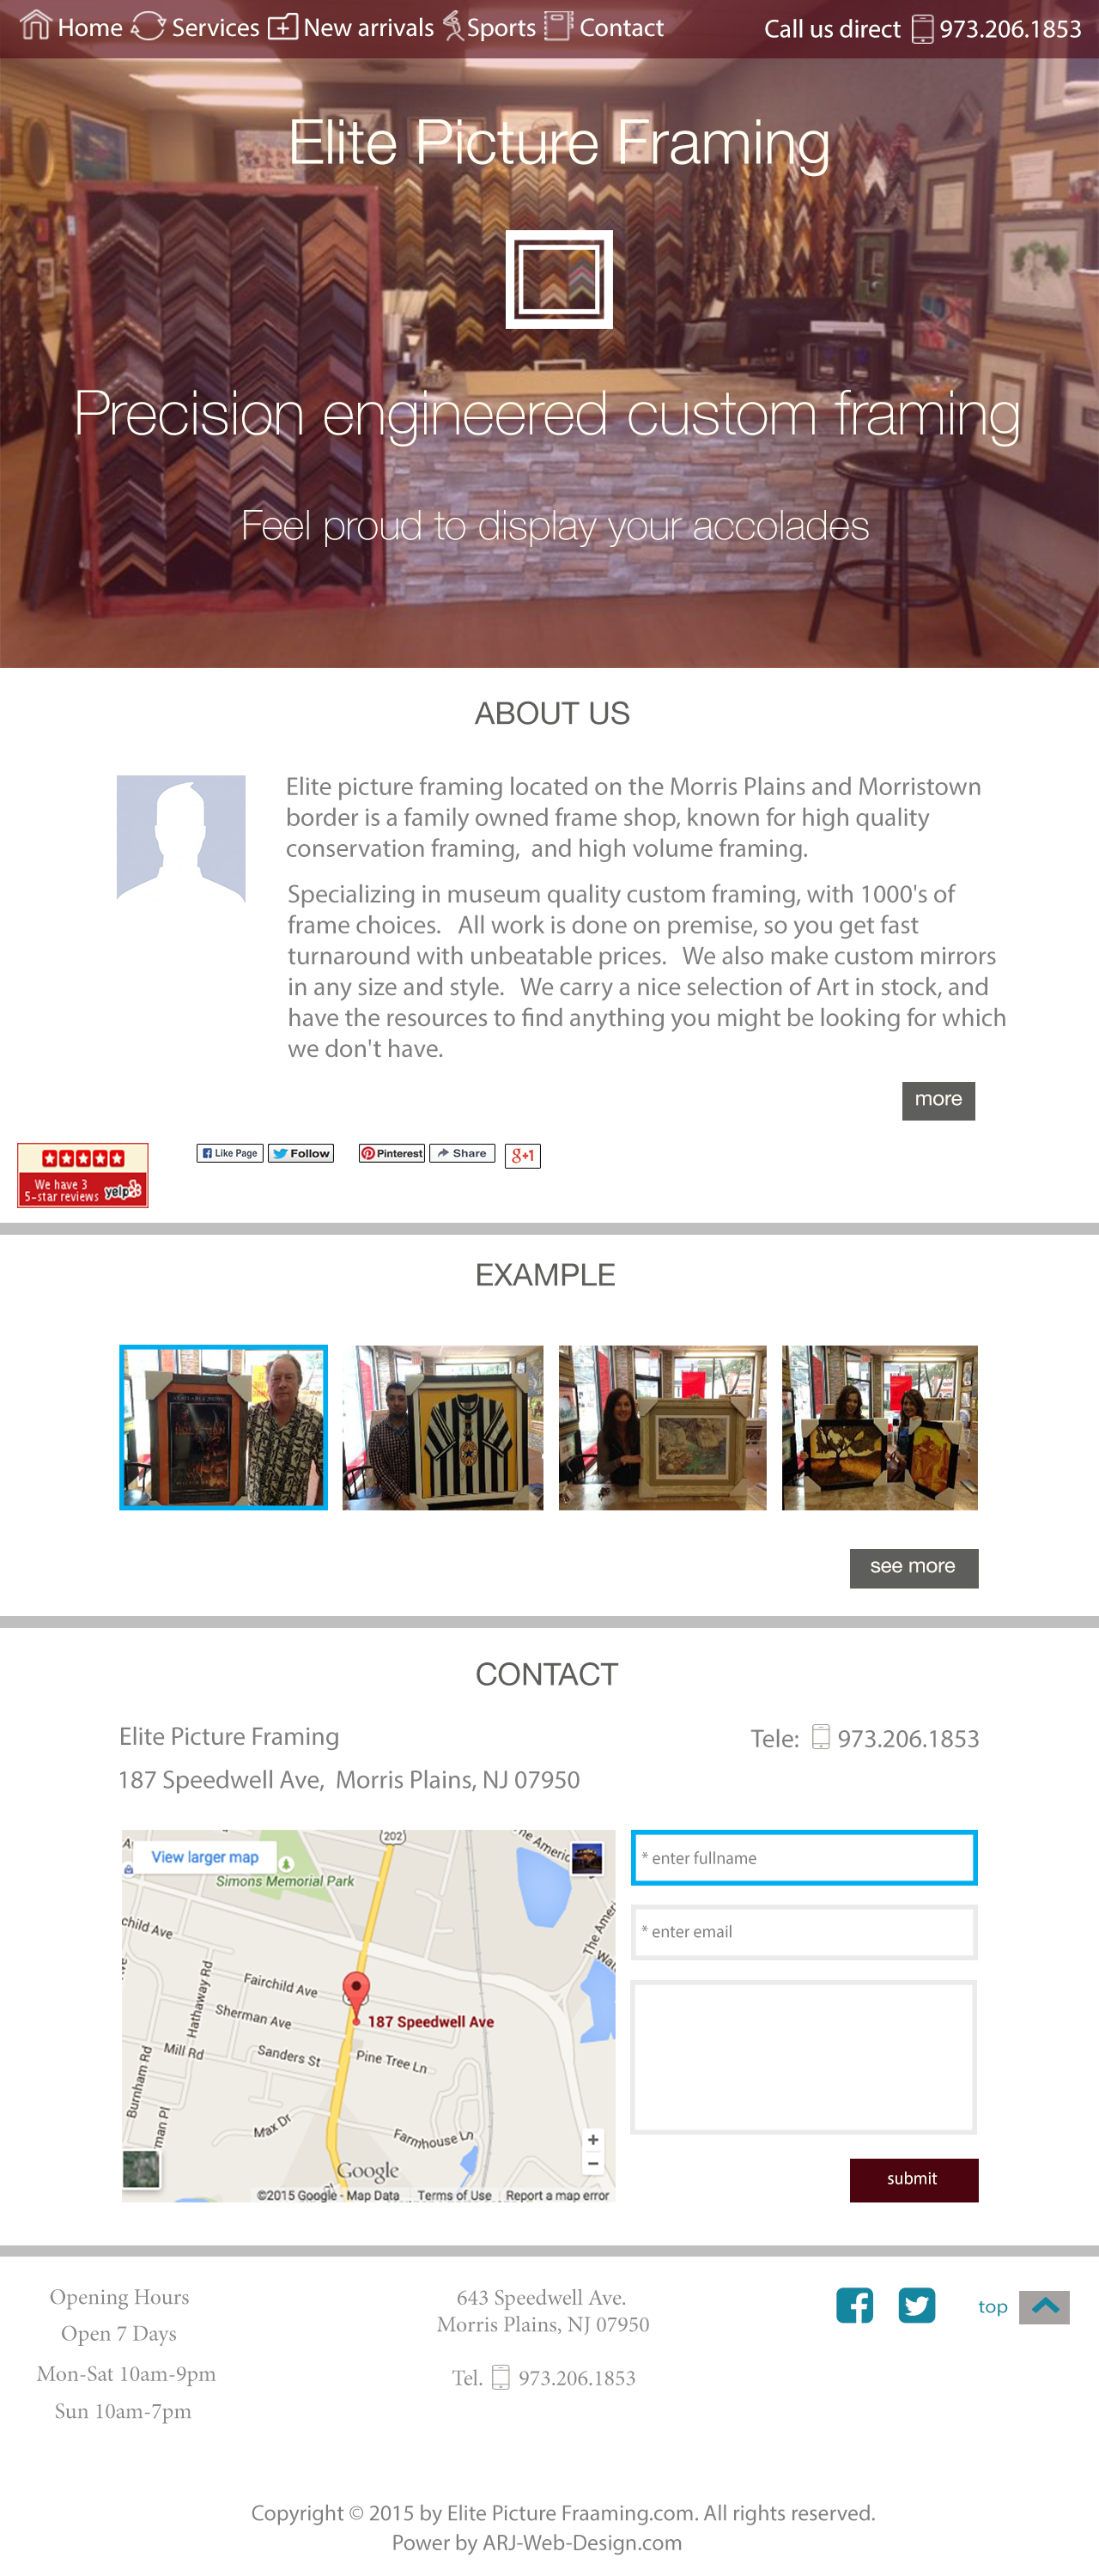 An image of a Template for Elite Piture Framing website design